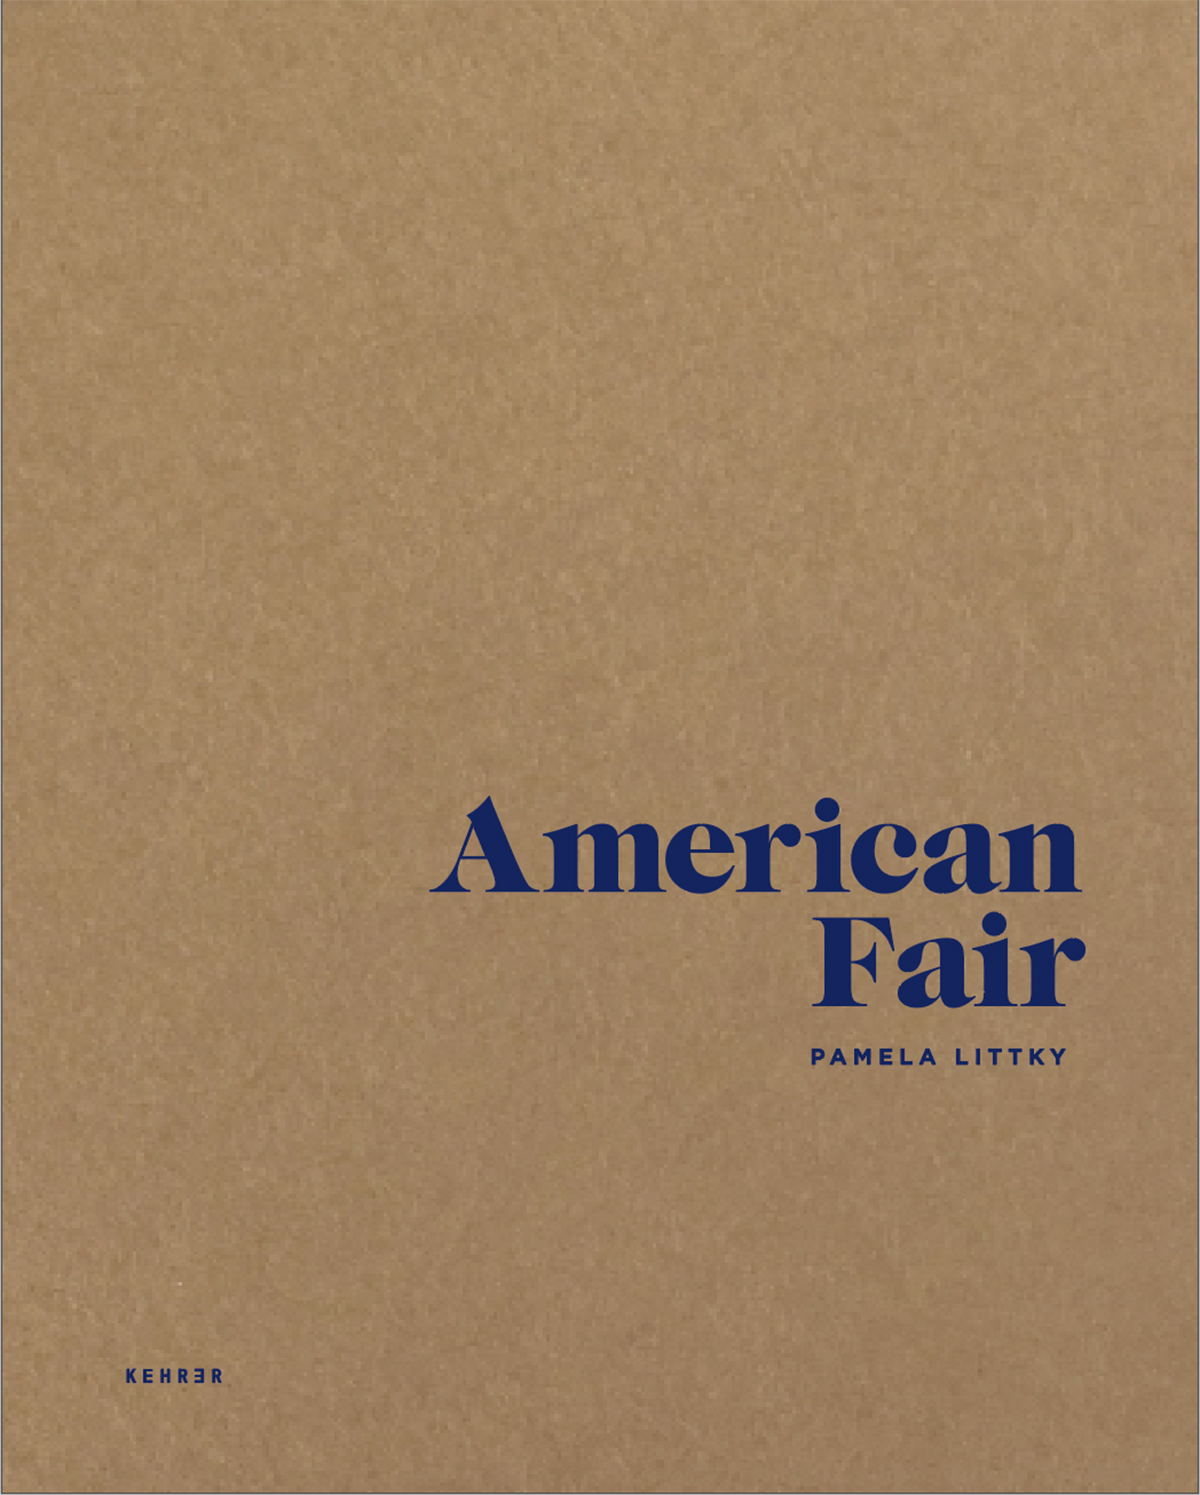 2. American Fair BOOK COVER